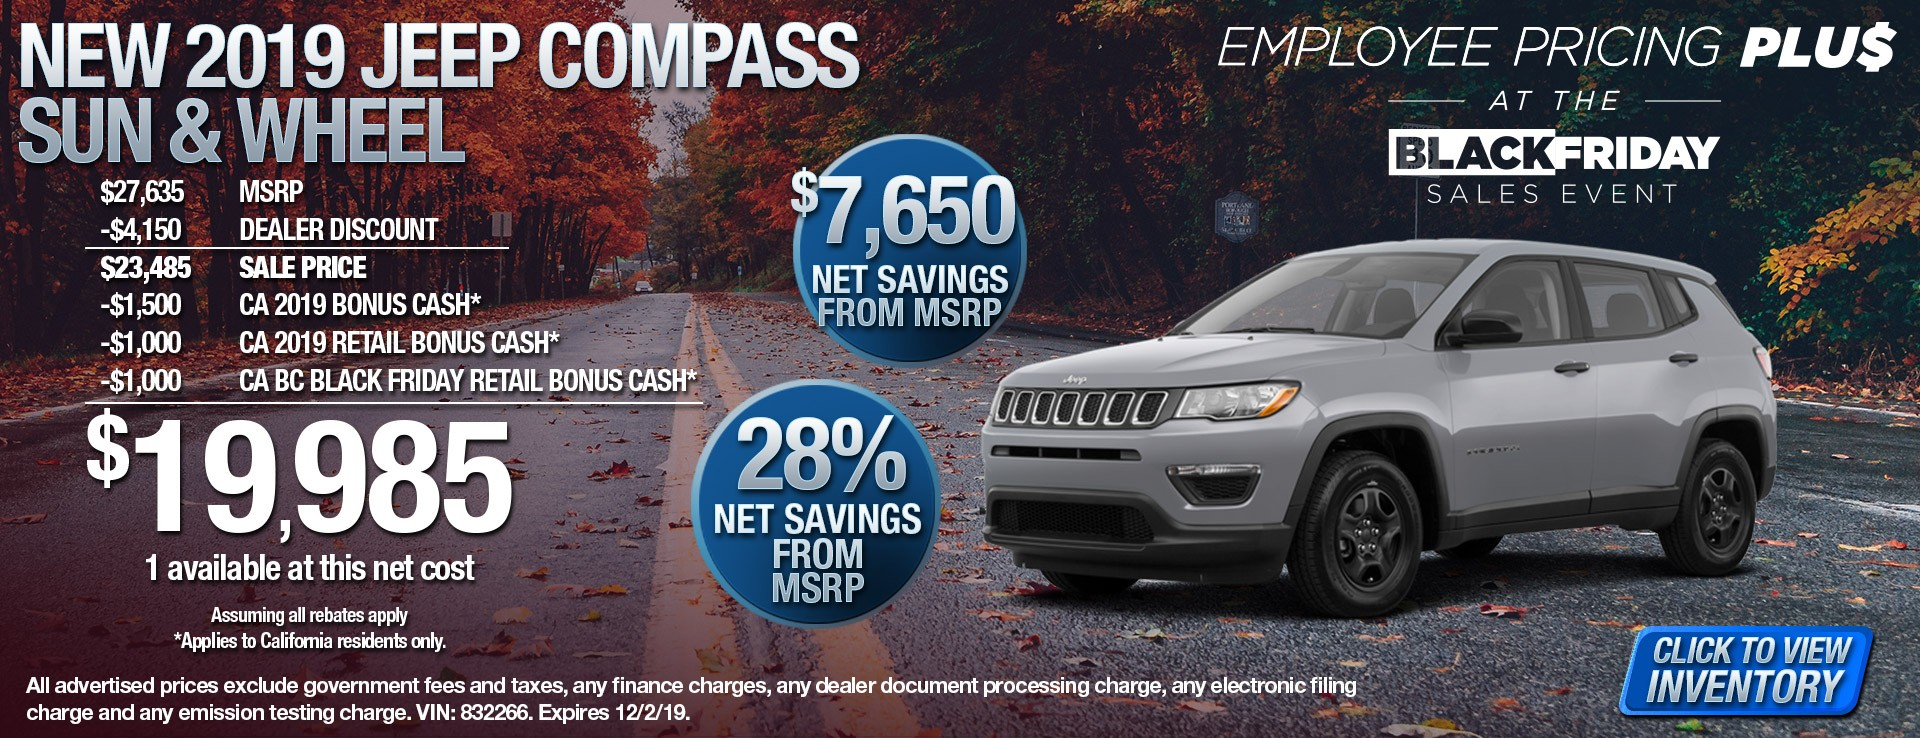 2019 Jeep Compass Sun & Wheel - $7650 Net Savings from MSRP